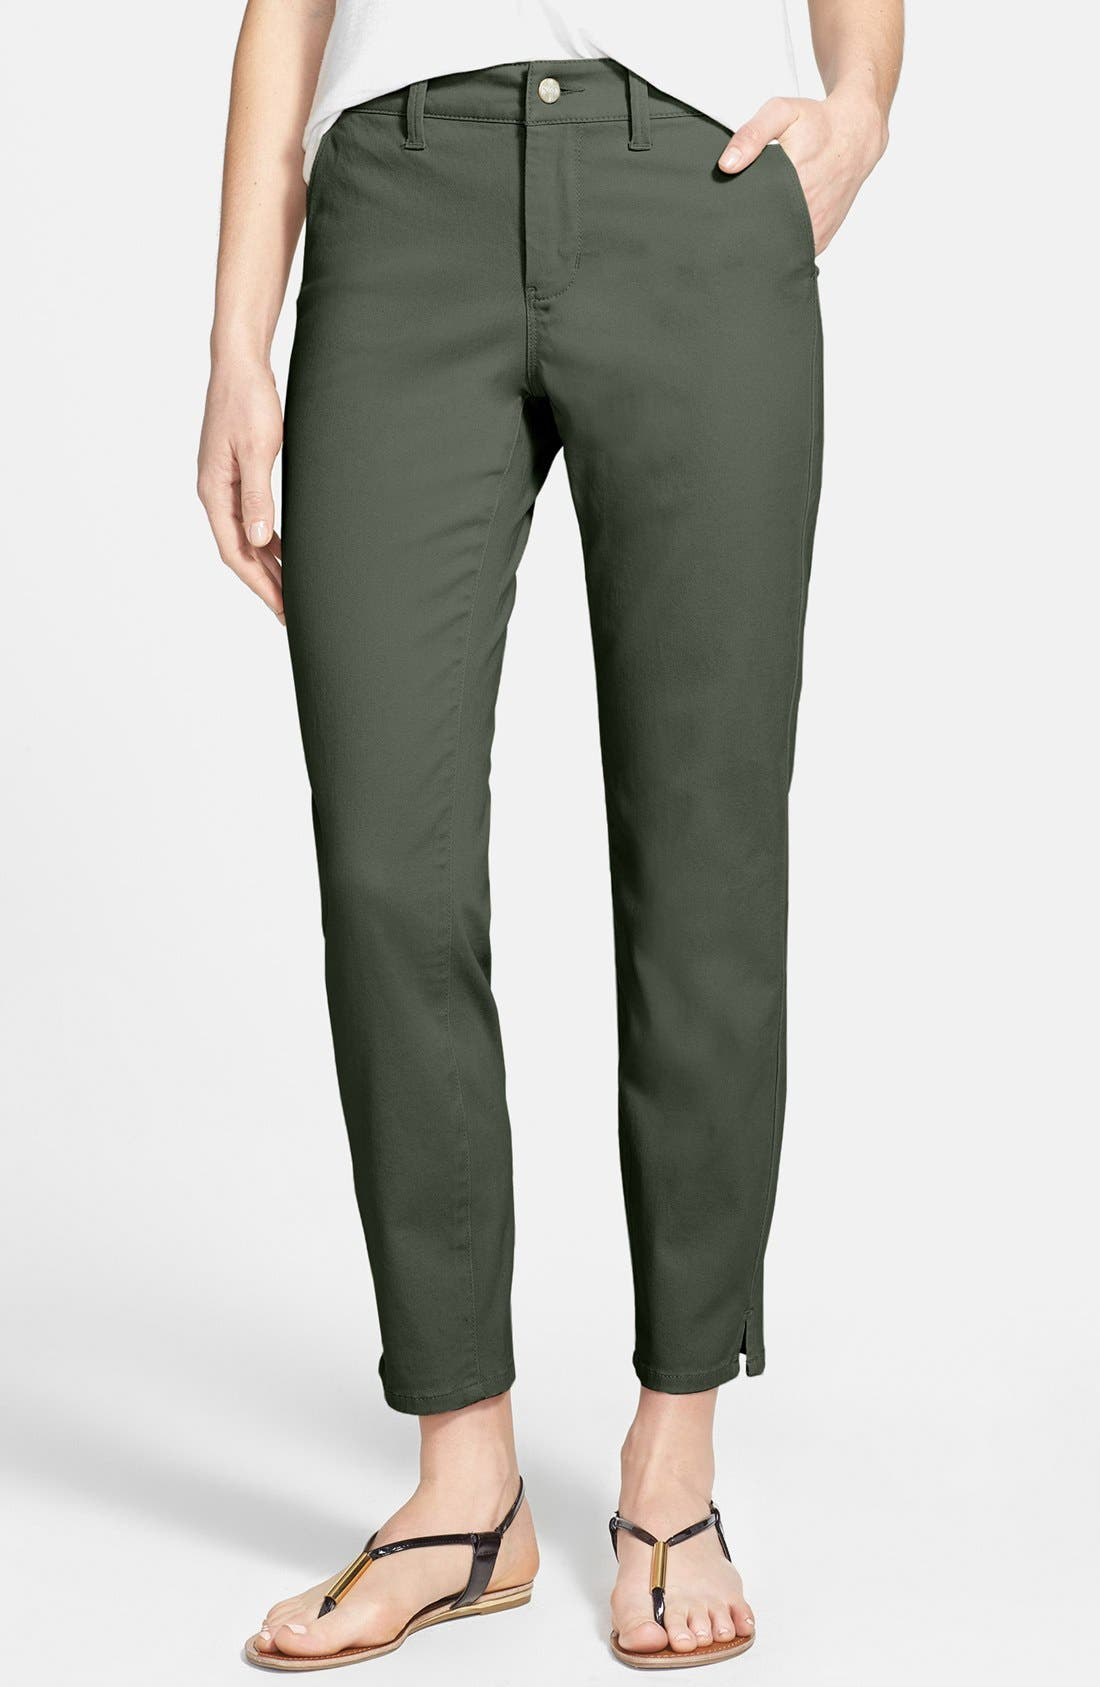 Main Image - NYDJ 'Aileen' Colored Stretch Ankle Trouser Jeans (Petite)